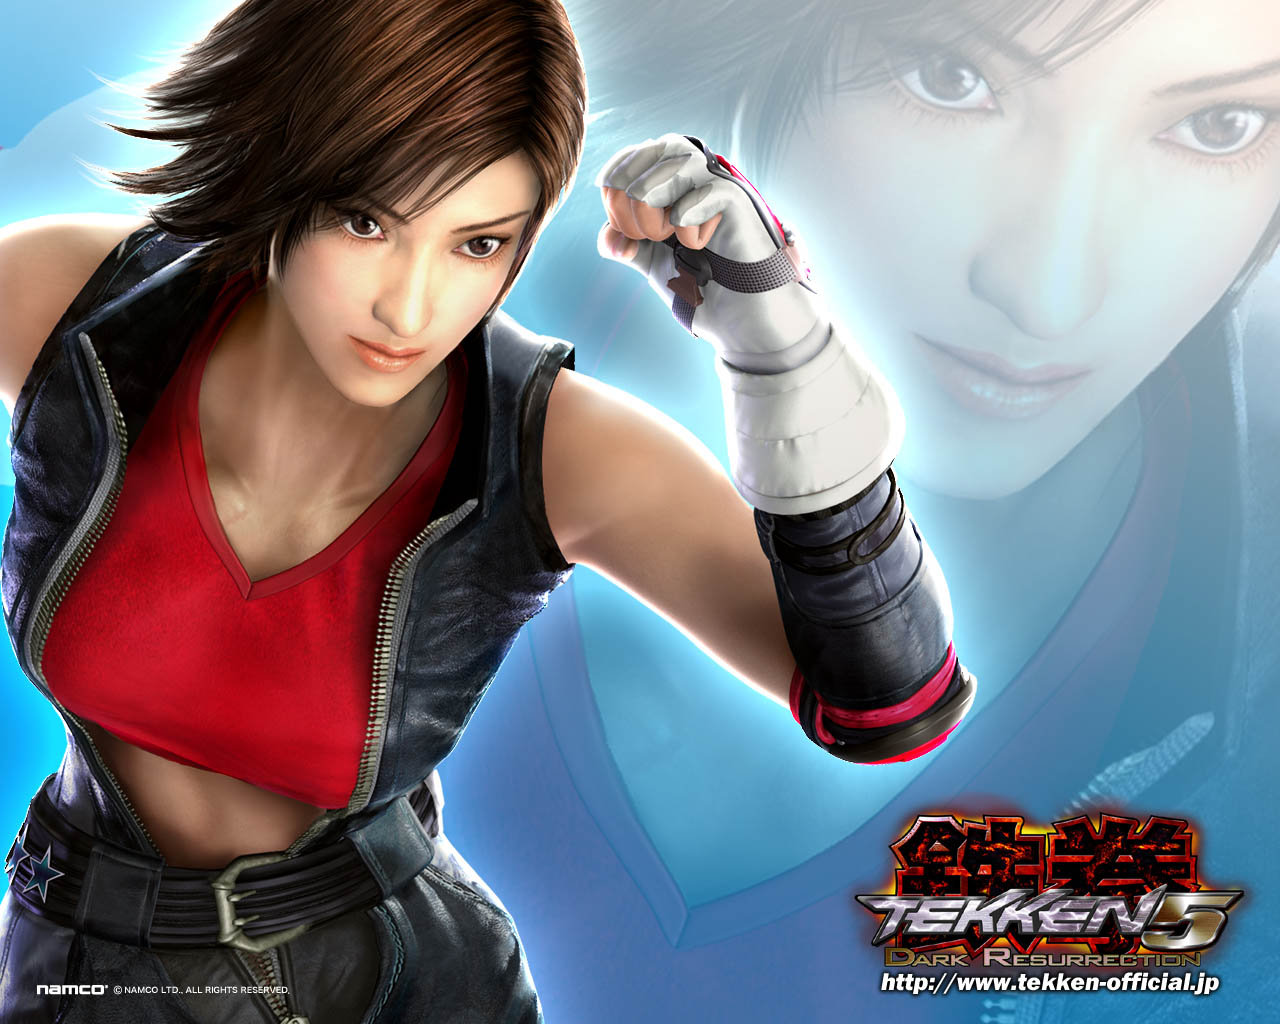 tekken 5 images asuka hd wallpaper and background photos (31519048)